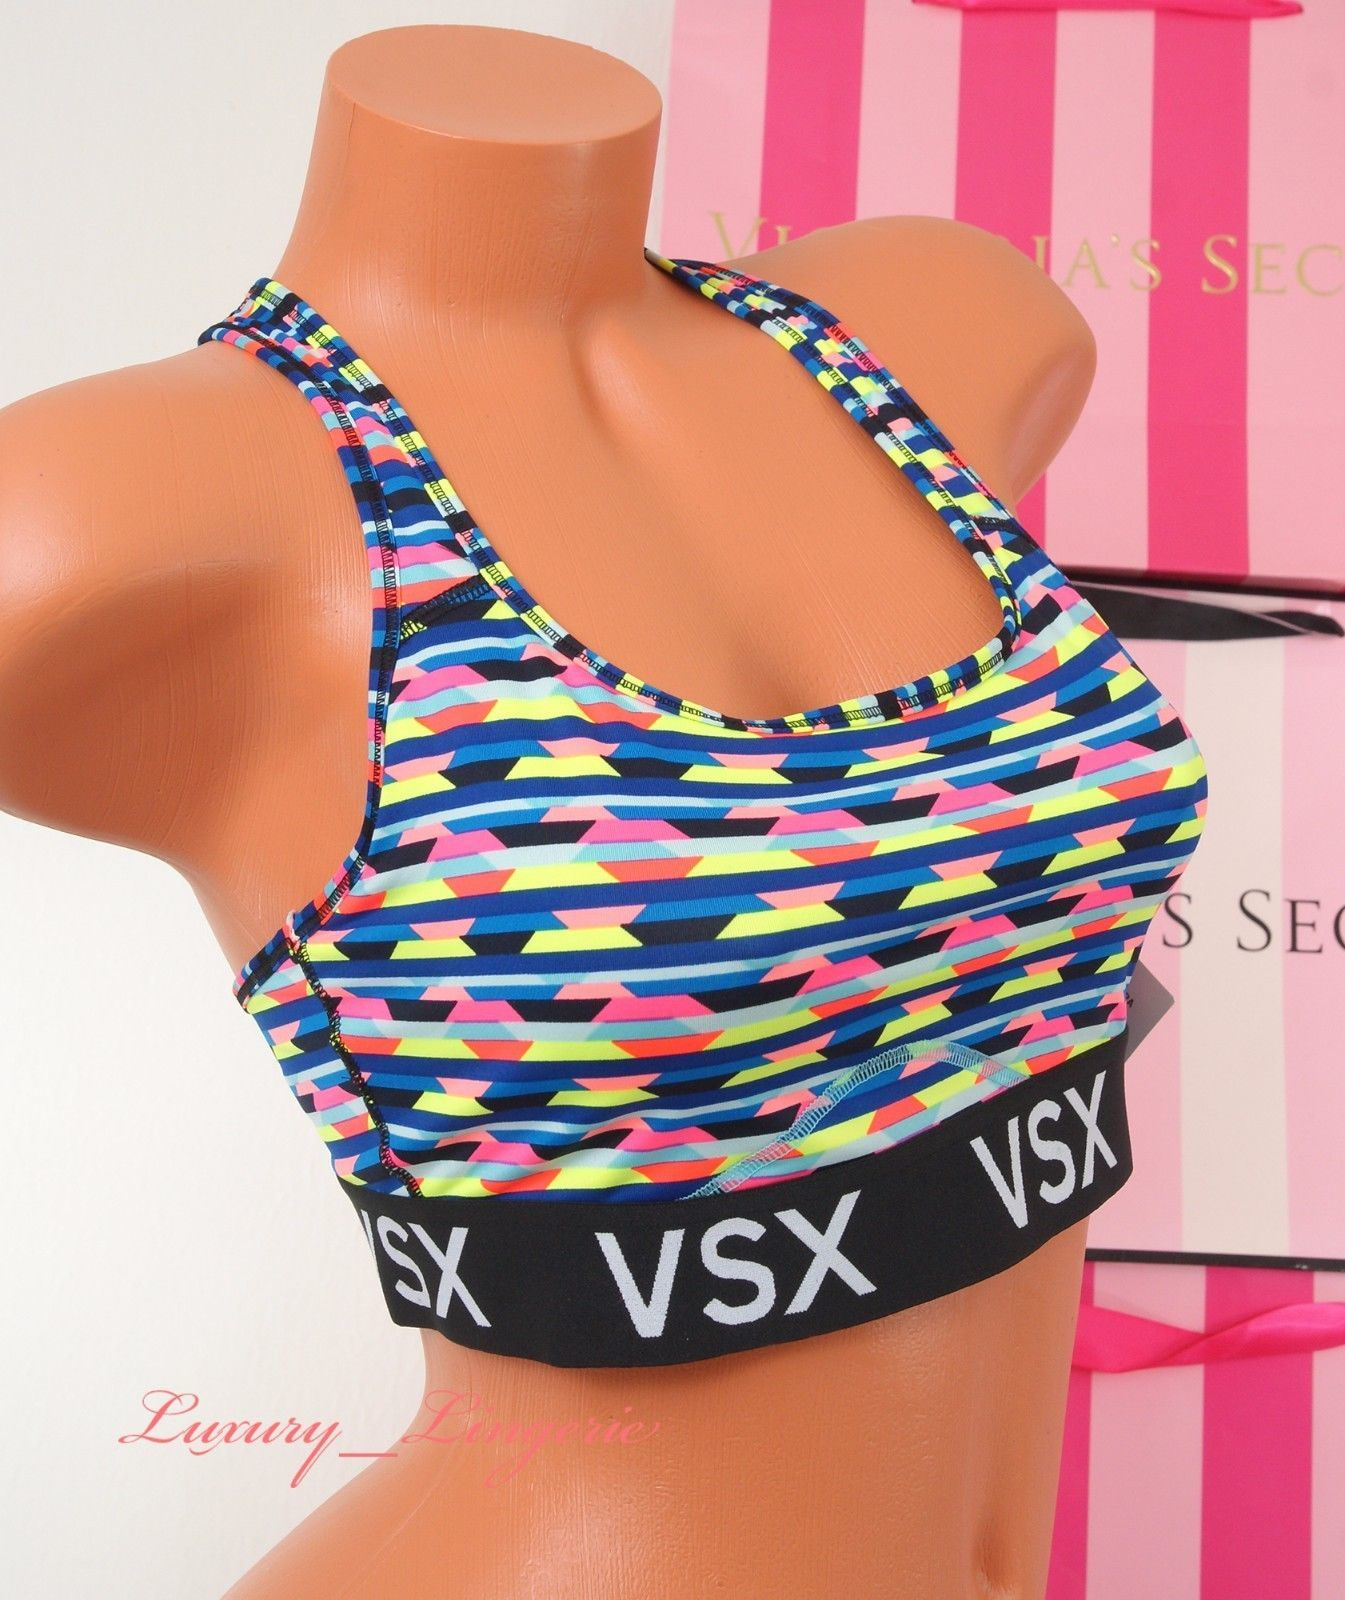 NWT VS VICTORIA'S SECRET Player VSX Sport Bra Racerback Bralette Unlined M 3II8